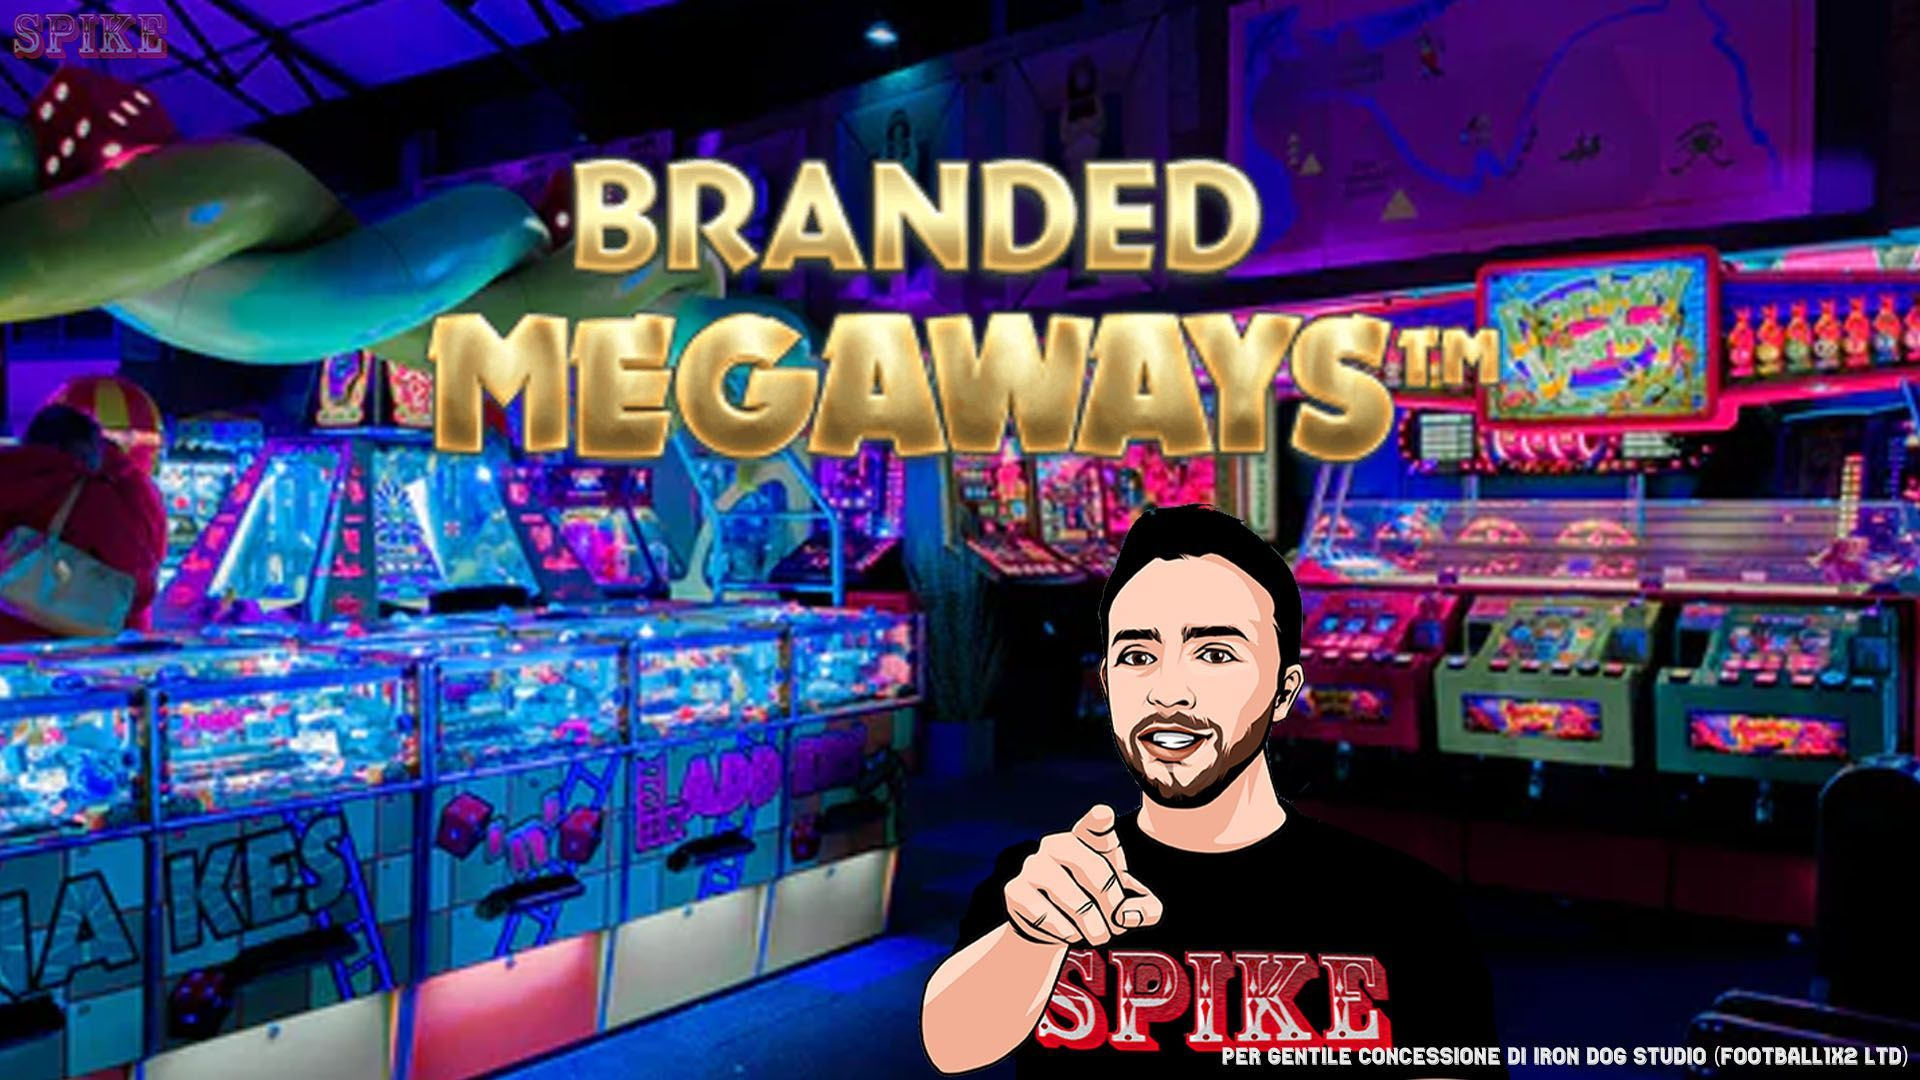 Branded Megaways Slot Online Nuove Personalizzabili Card